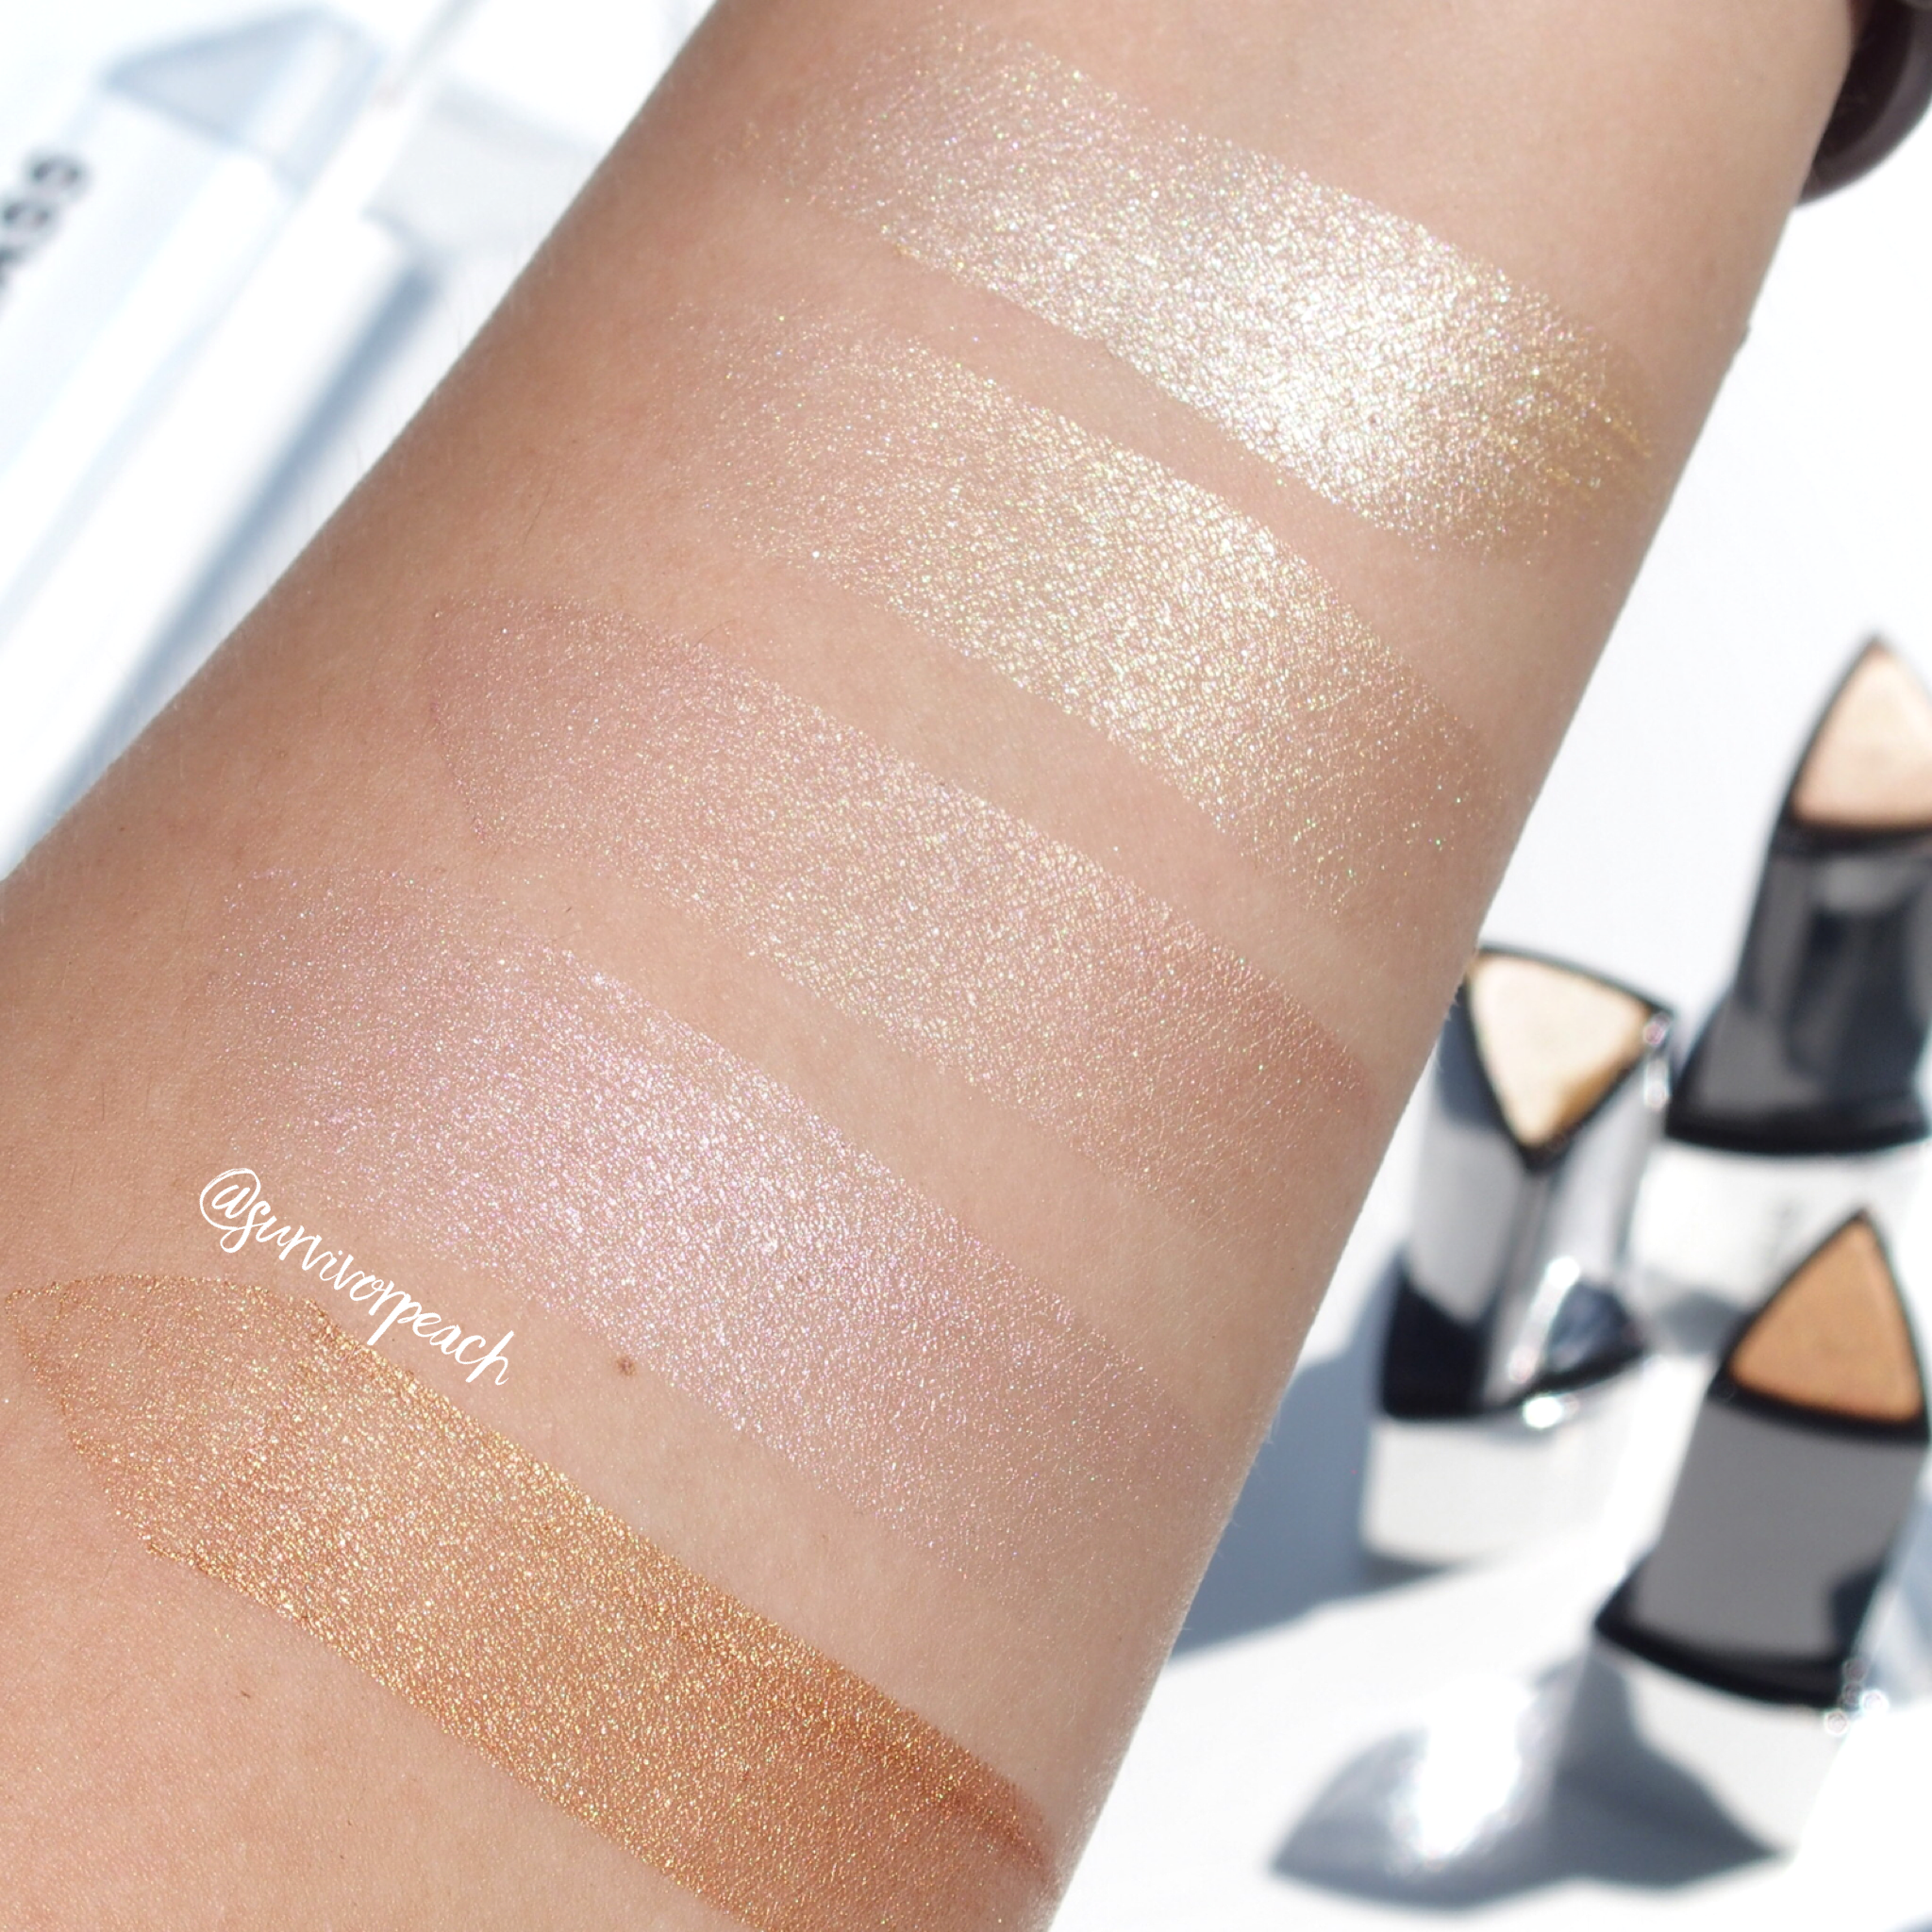 Hourglass Vanish Flash Highlighter Stick Swatches  1. Gold Flash 2. Champagne Flash 3. Rose Gold Flash 4. Pink Flash 5. Bronze Flash